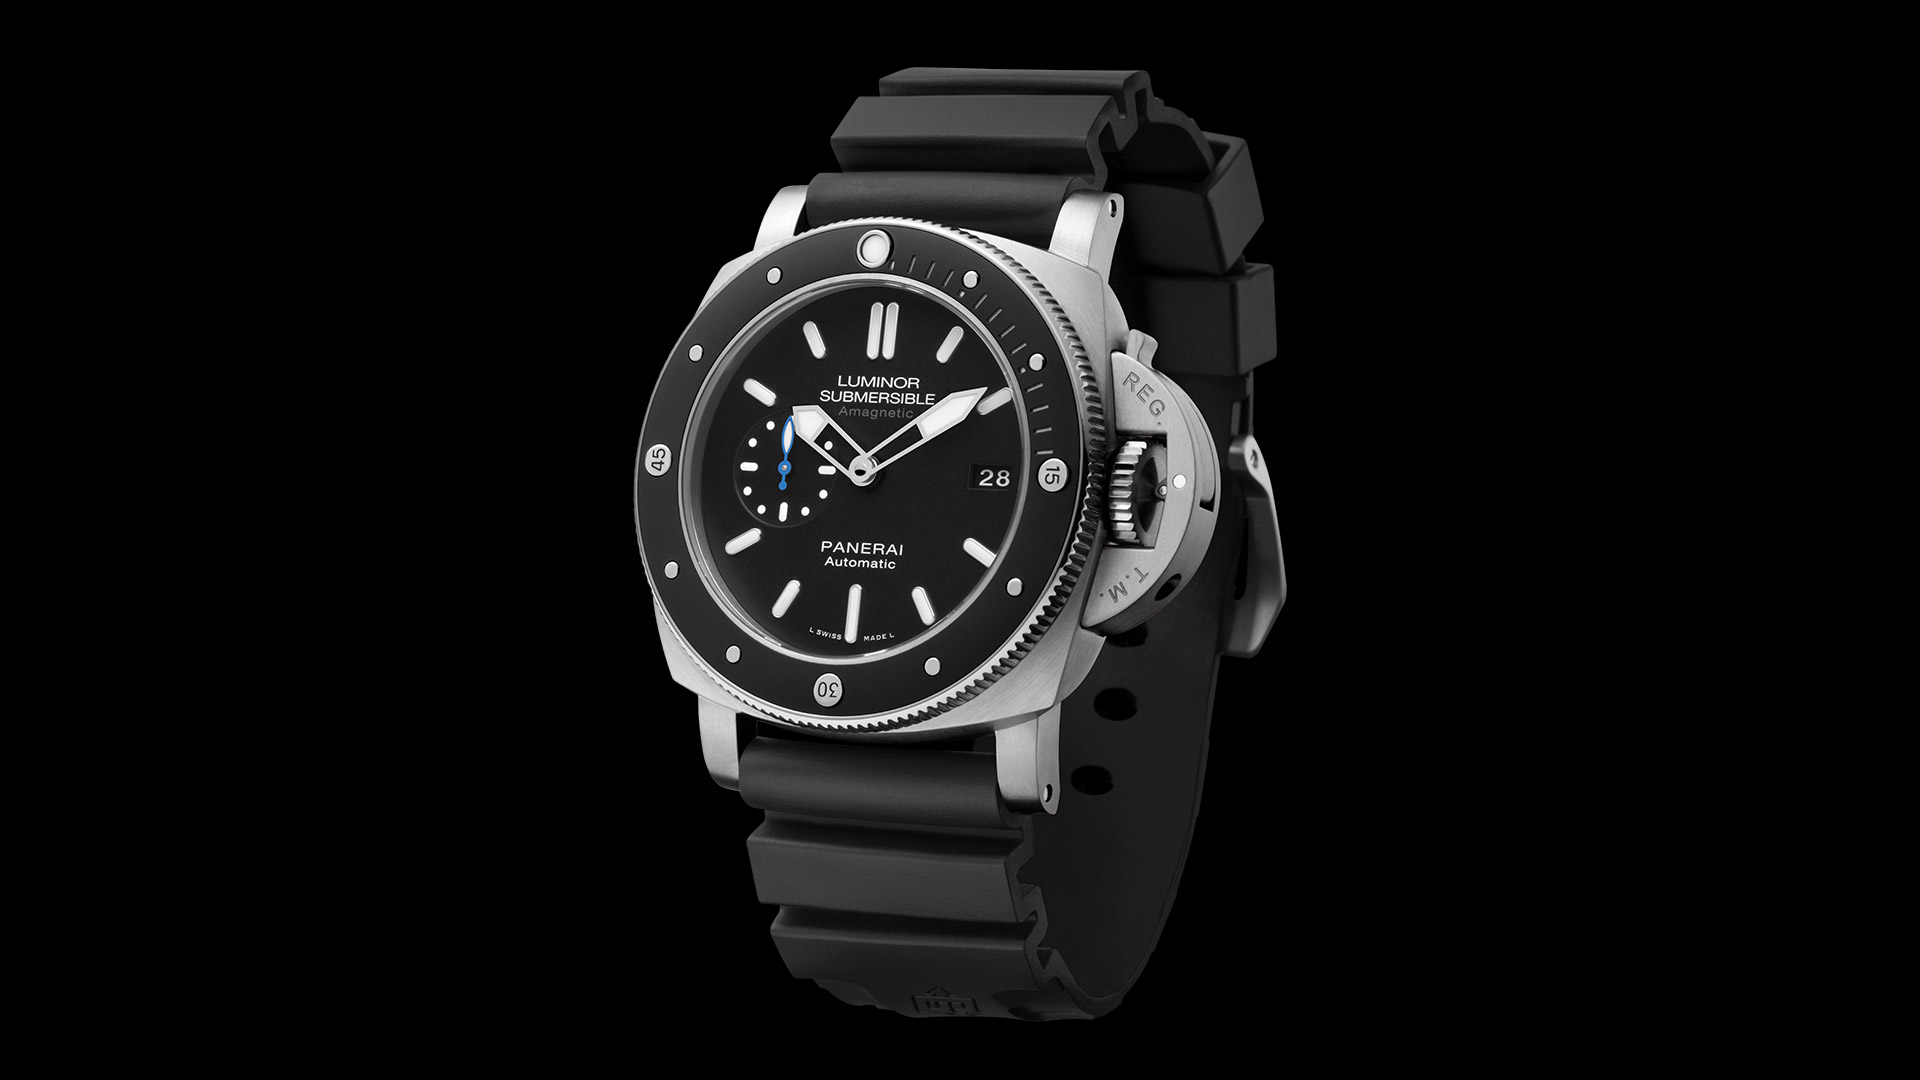 PANERAI LUMINOR SUBMERSIBLE 1950 AMAGNETIC - 3 DAYS automatic titanio 47 mm - PAM01389